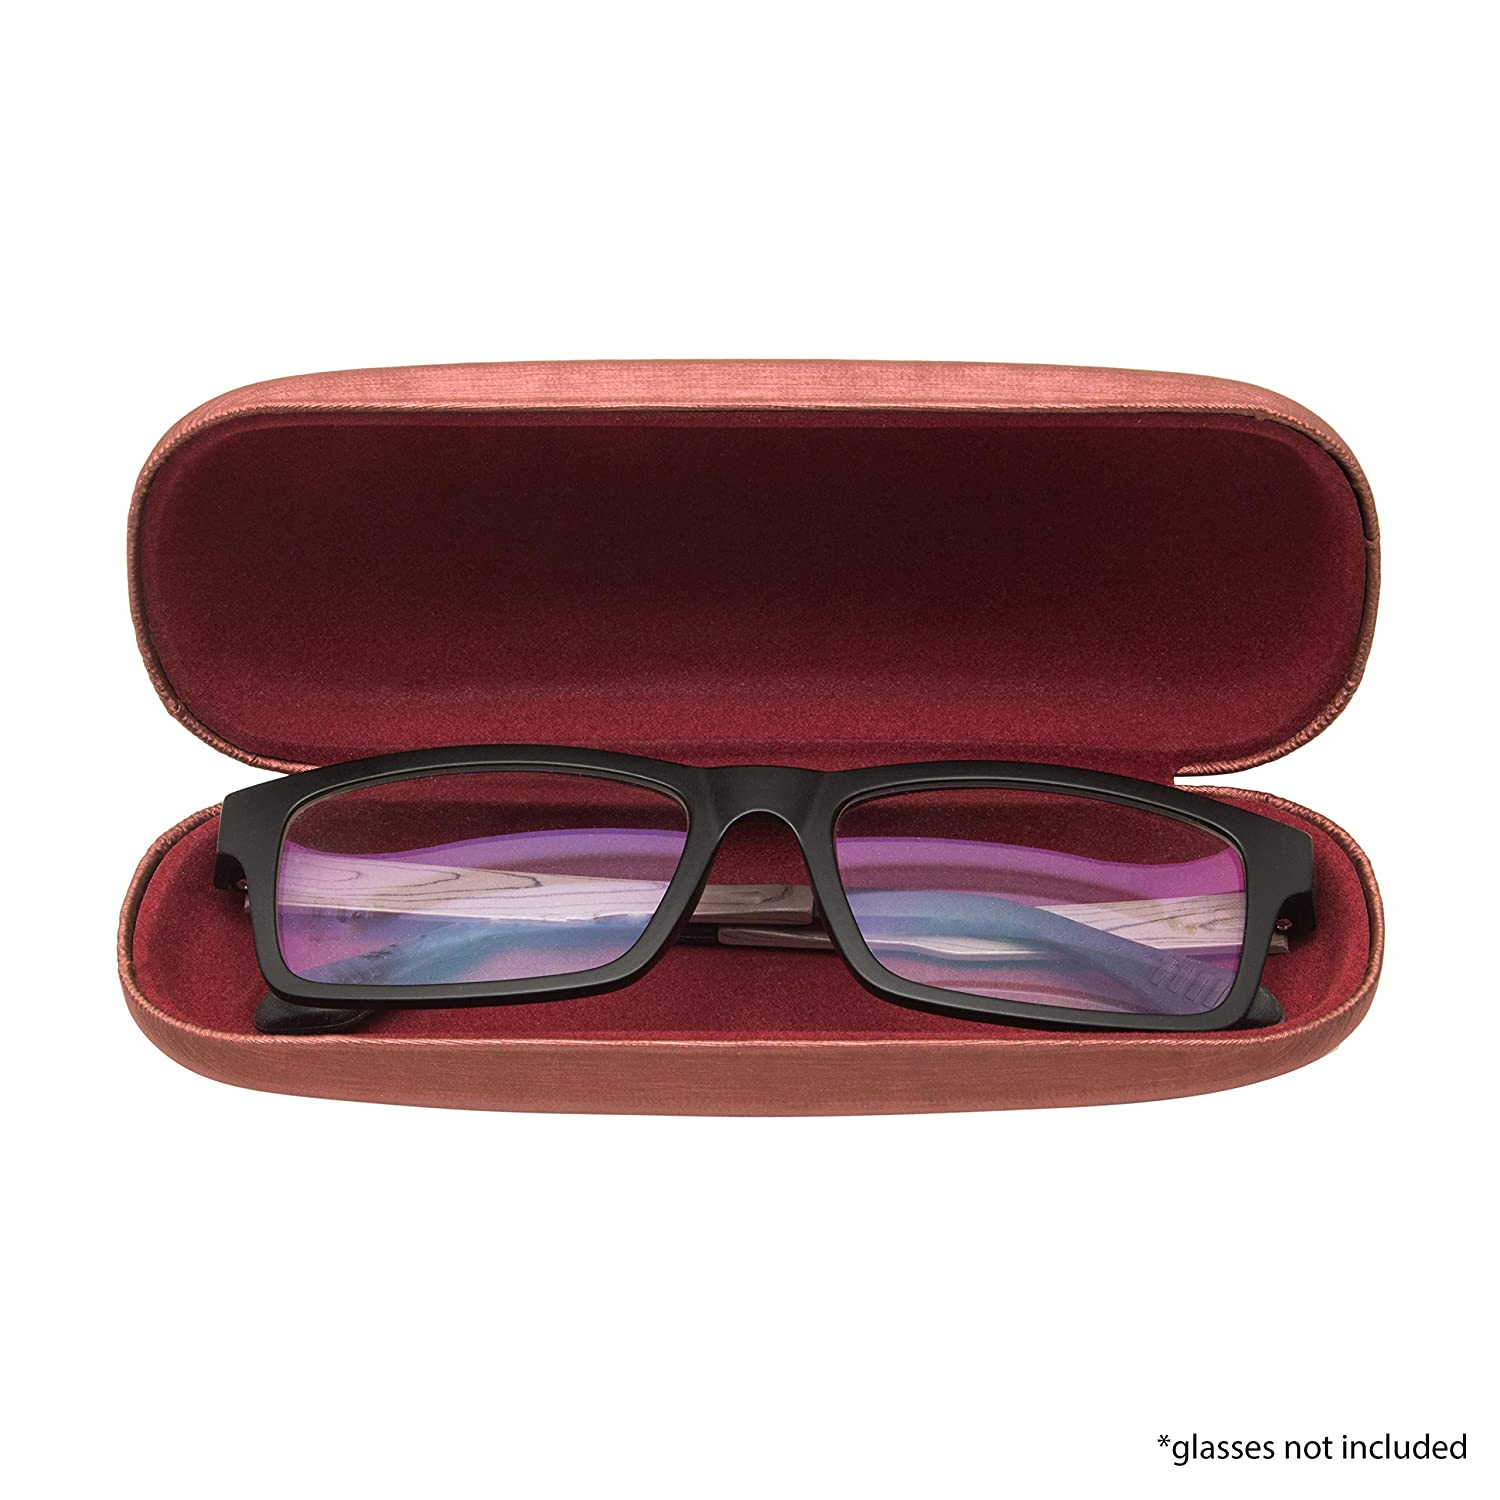 Hard Shell Protective Eyeglass Case Elegant Brushed Case Holder For Glasses And Sunglasses With Microfiber Cloth For Adults and Kids.